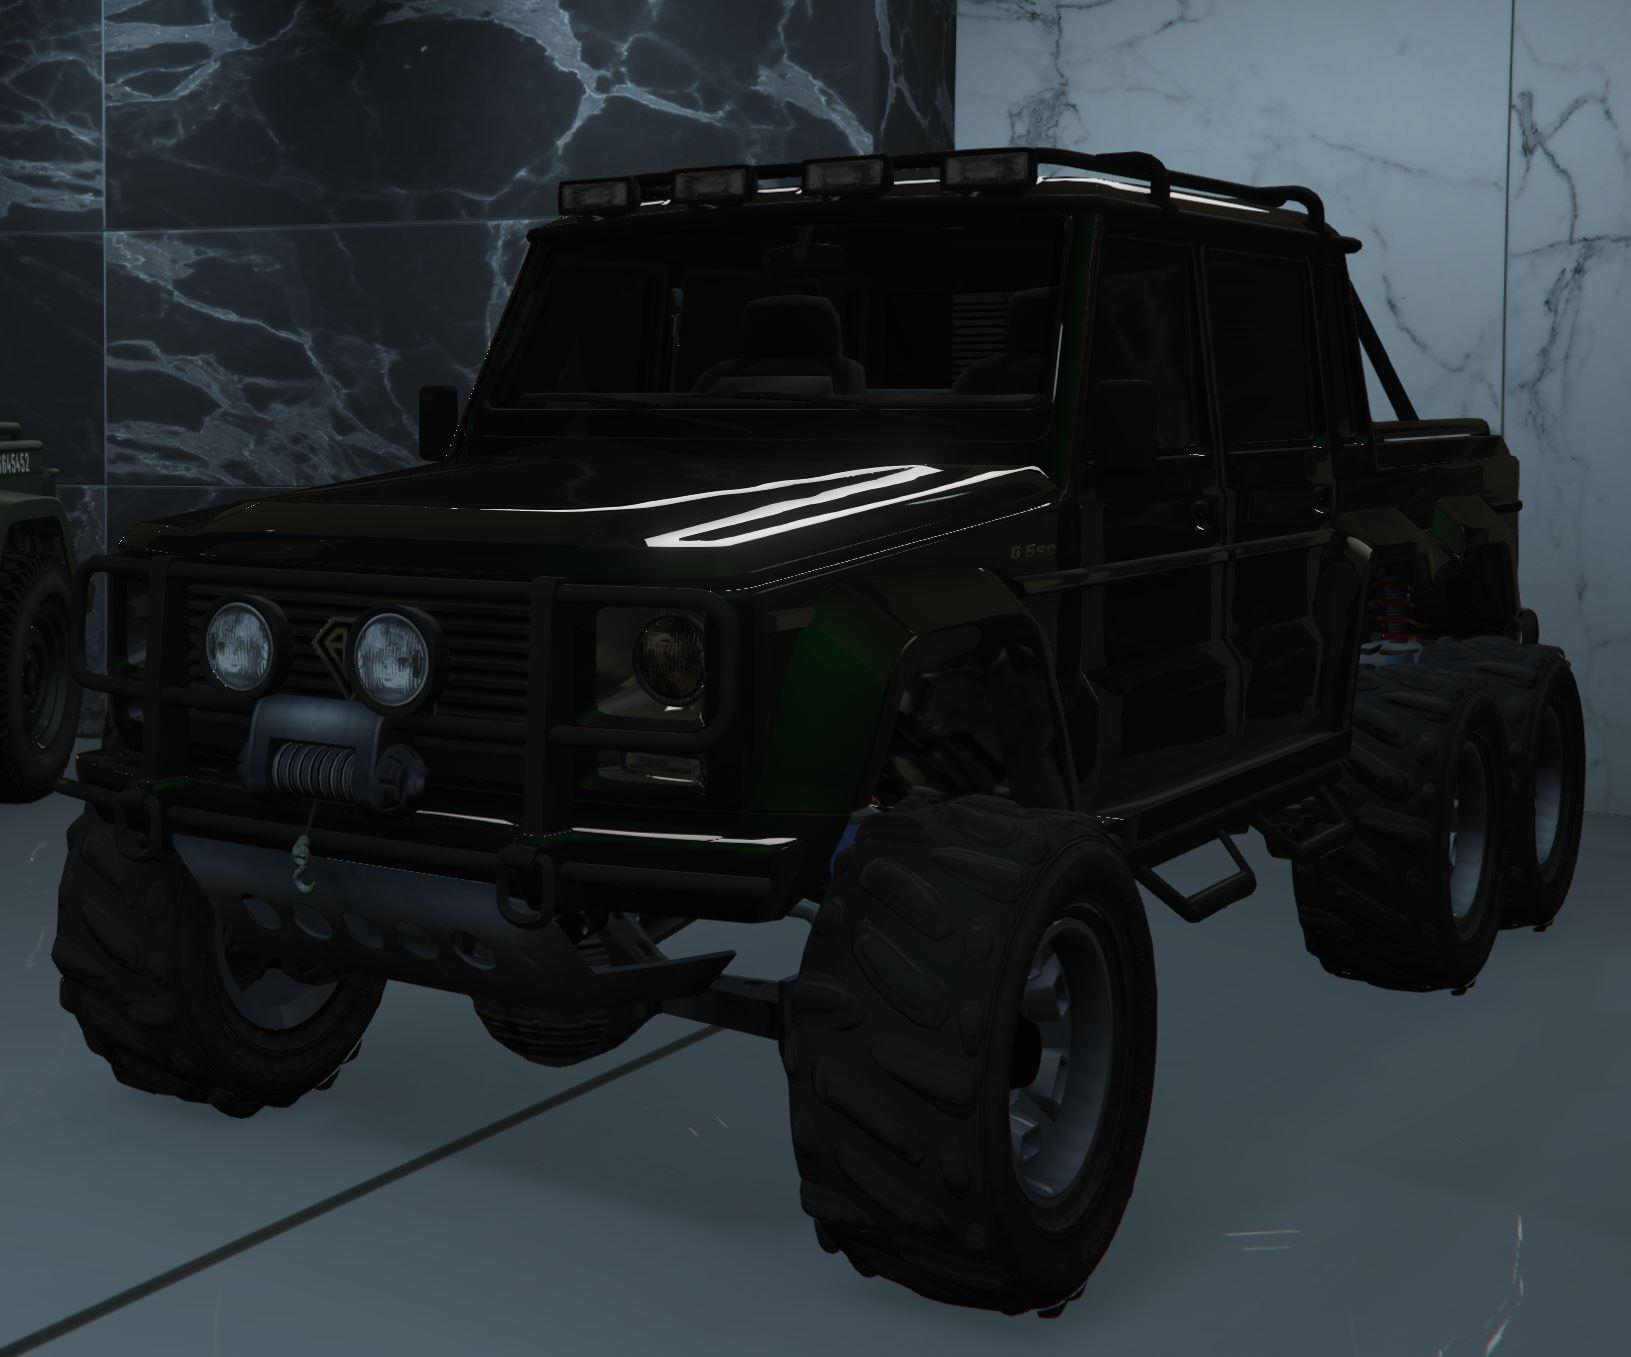 Custom Dubsta 6x6 by Ghostdudes